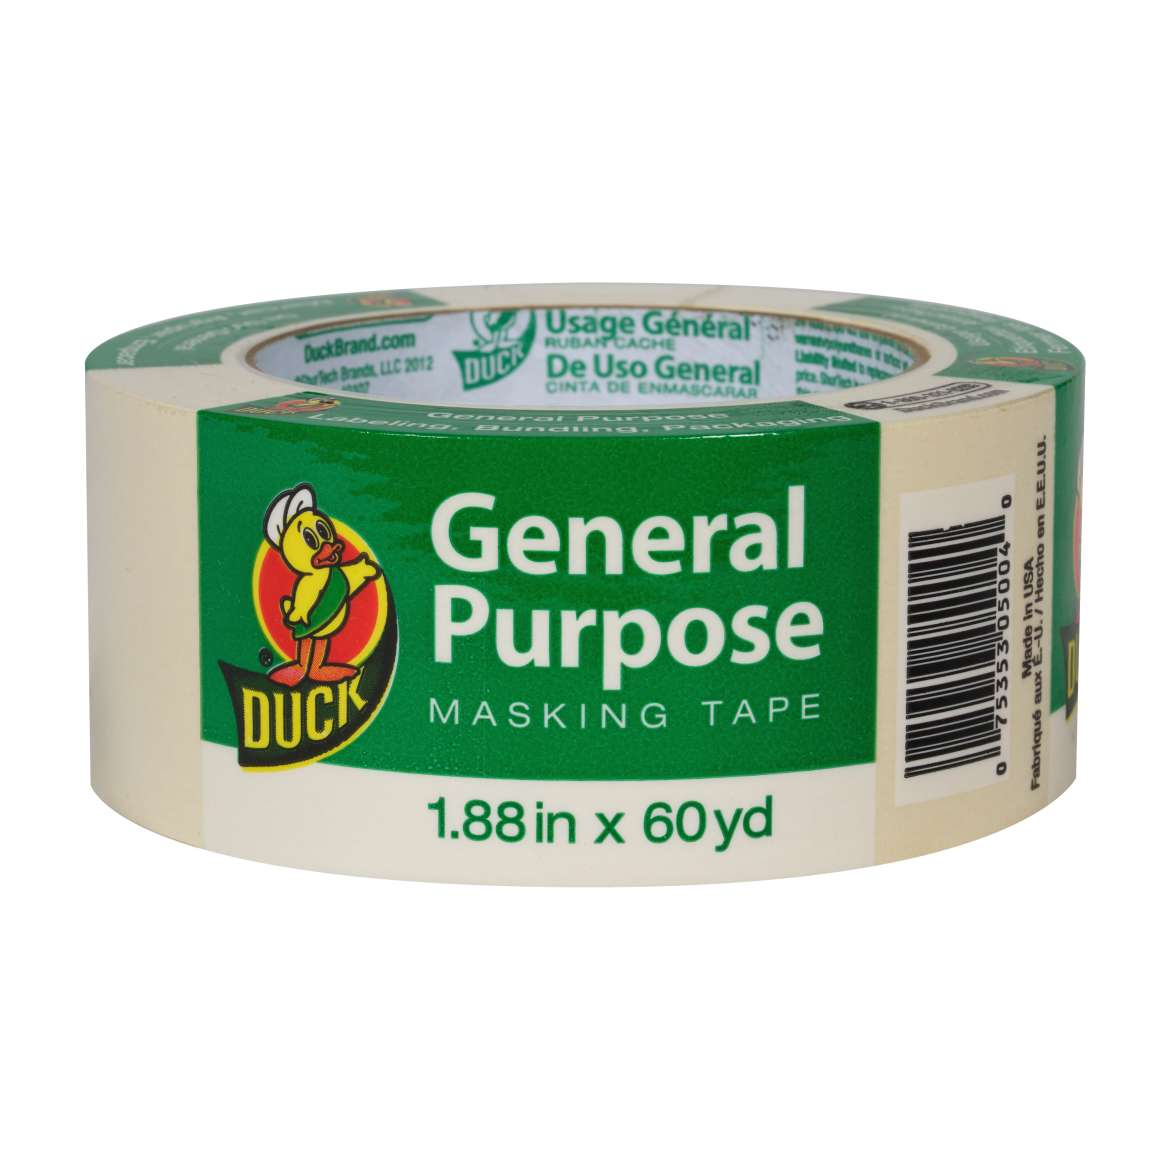 Duck® Brand General Purpose Masking Tape - Beige, 1.88 in. x 60 yd. Image